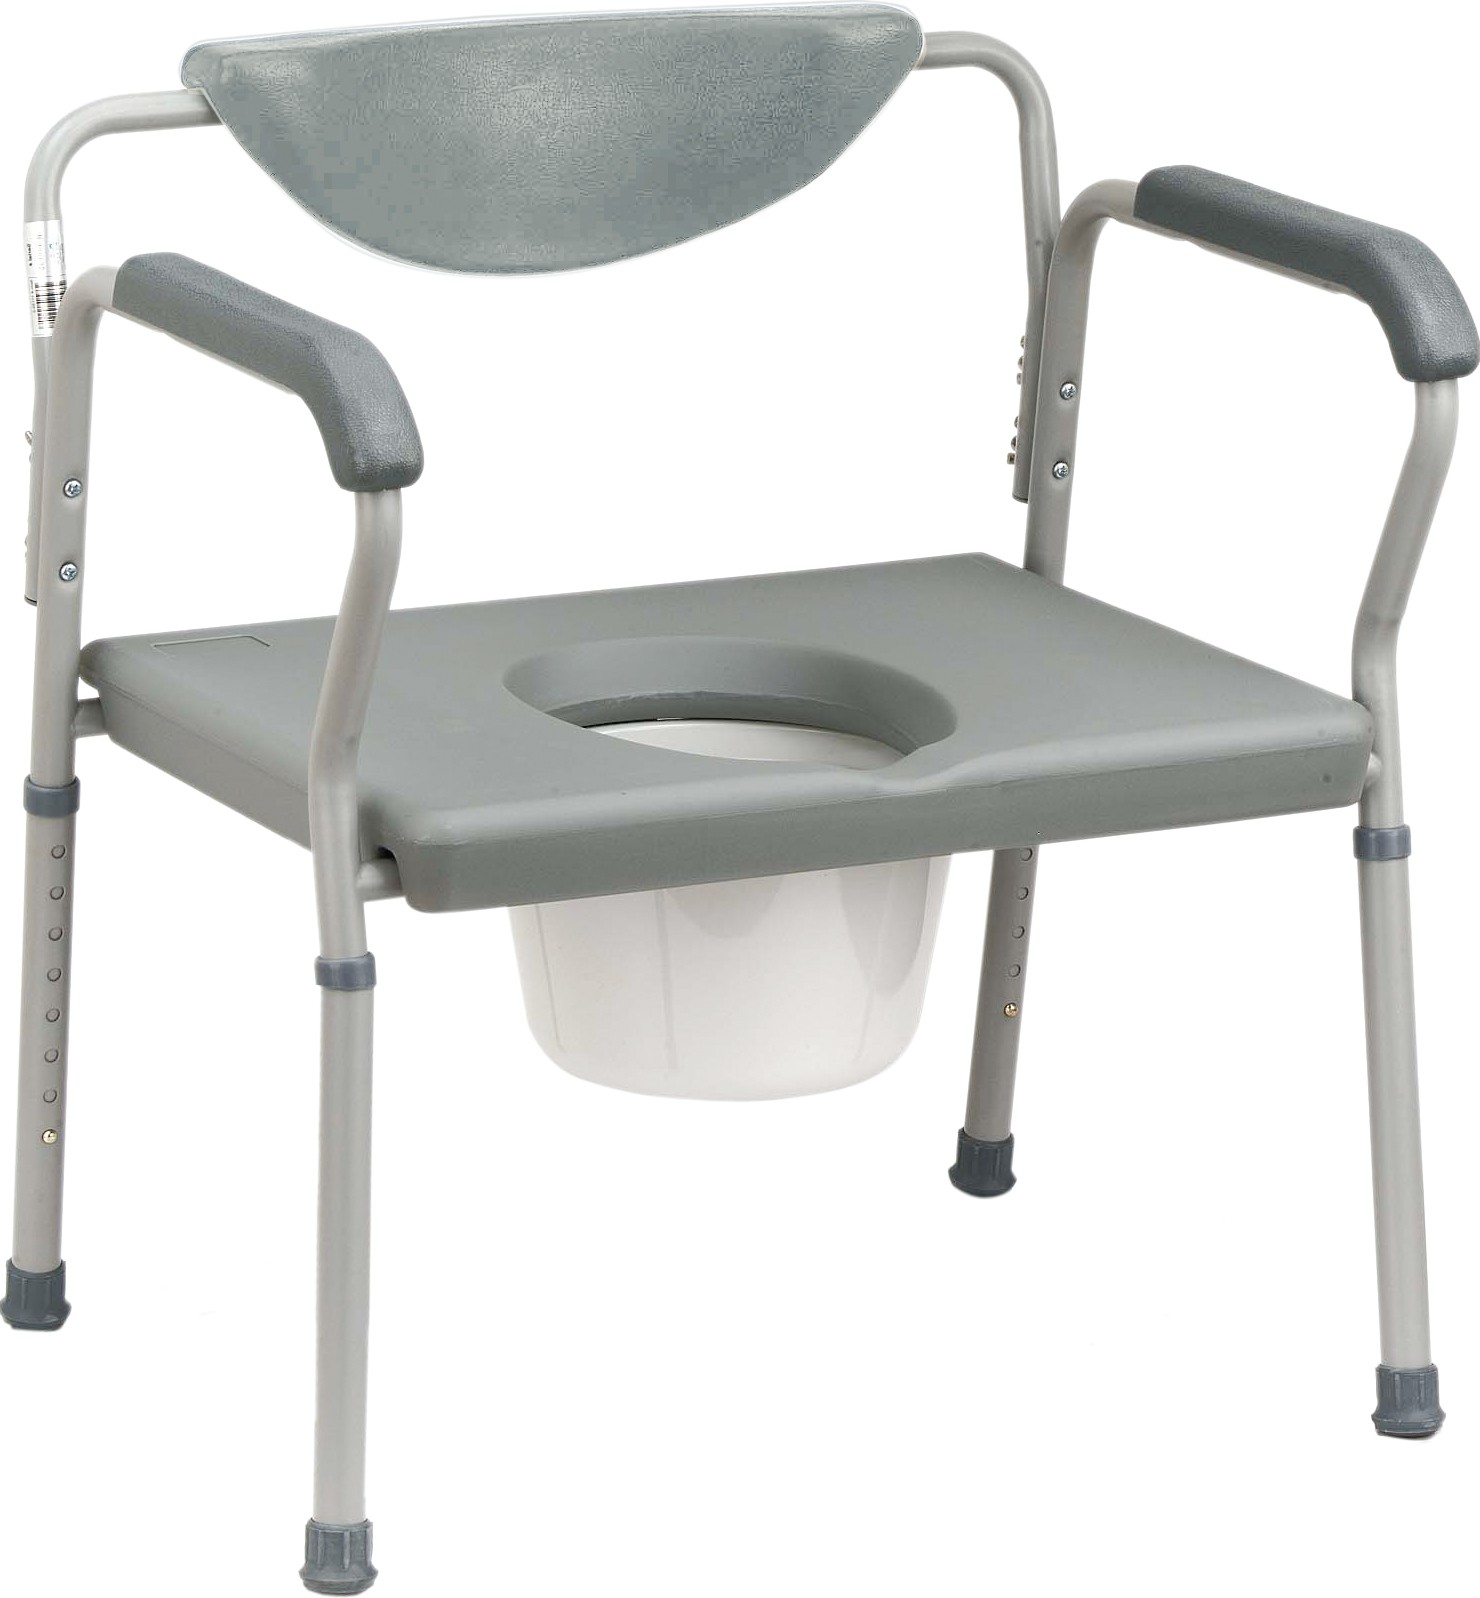 Commodes at Lowes | Home Depot Toilet | Best Flushing Toilet